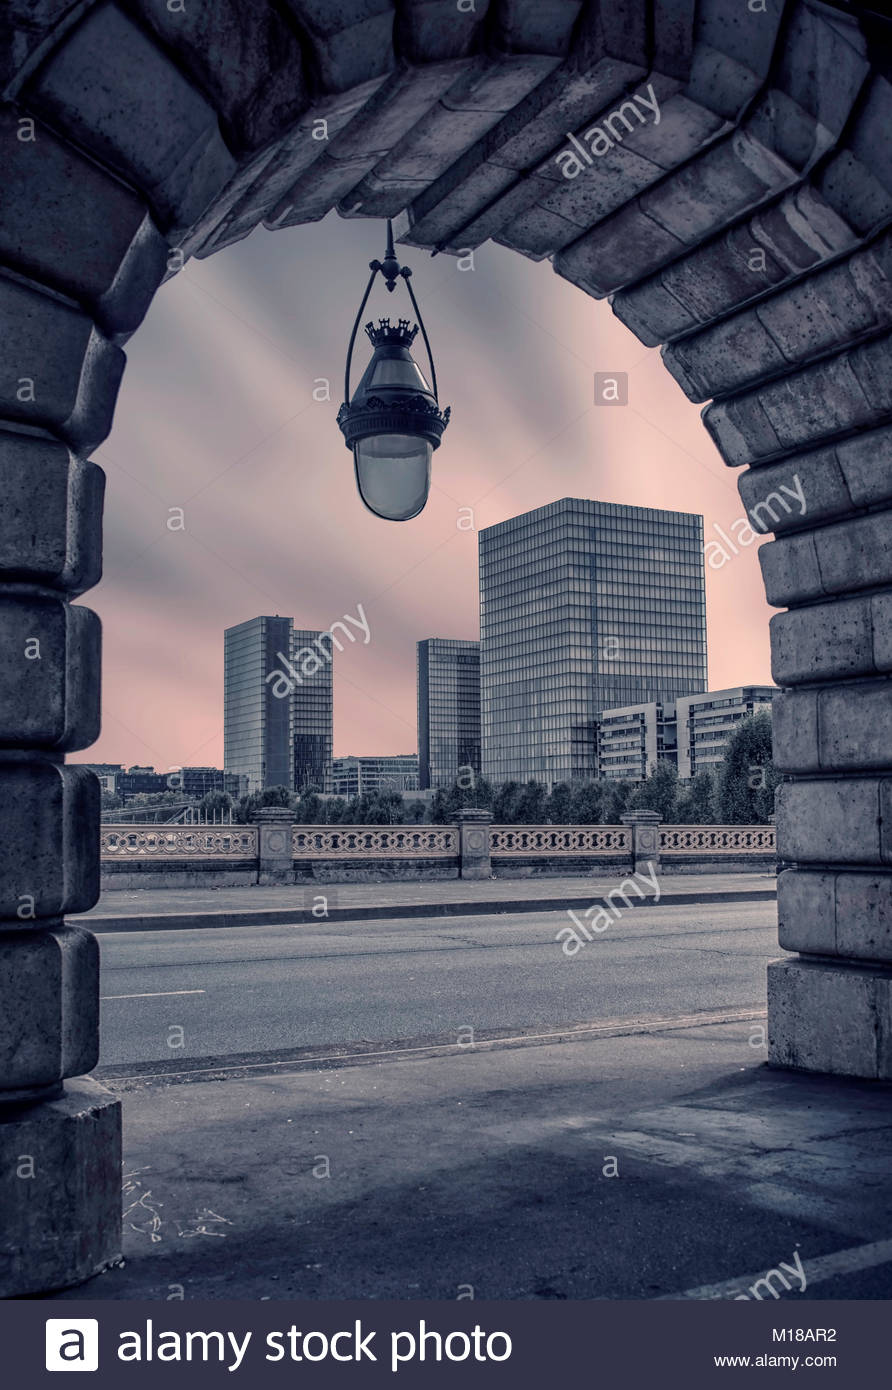 National library in Paris viewed from the Bercy bridge - Stock Image